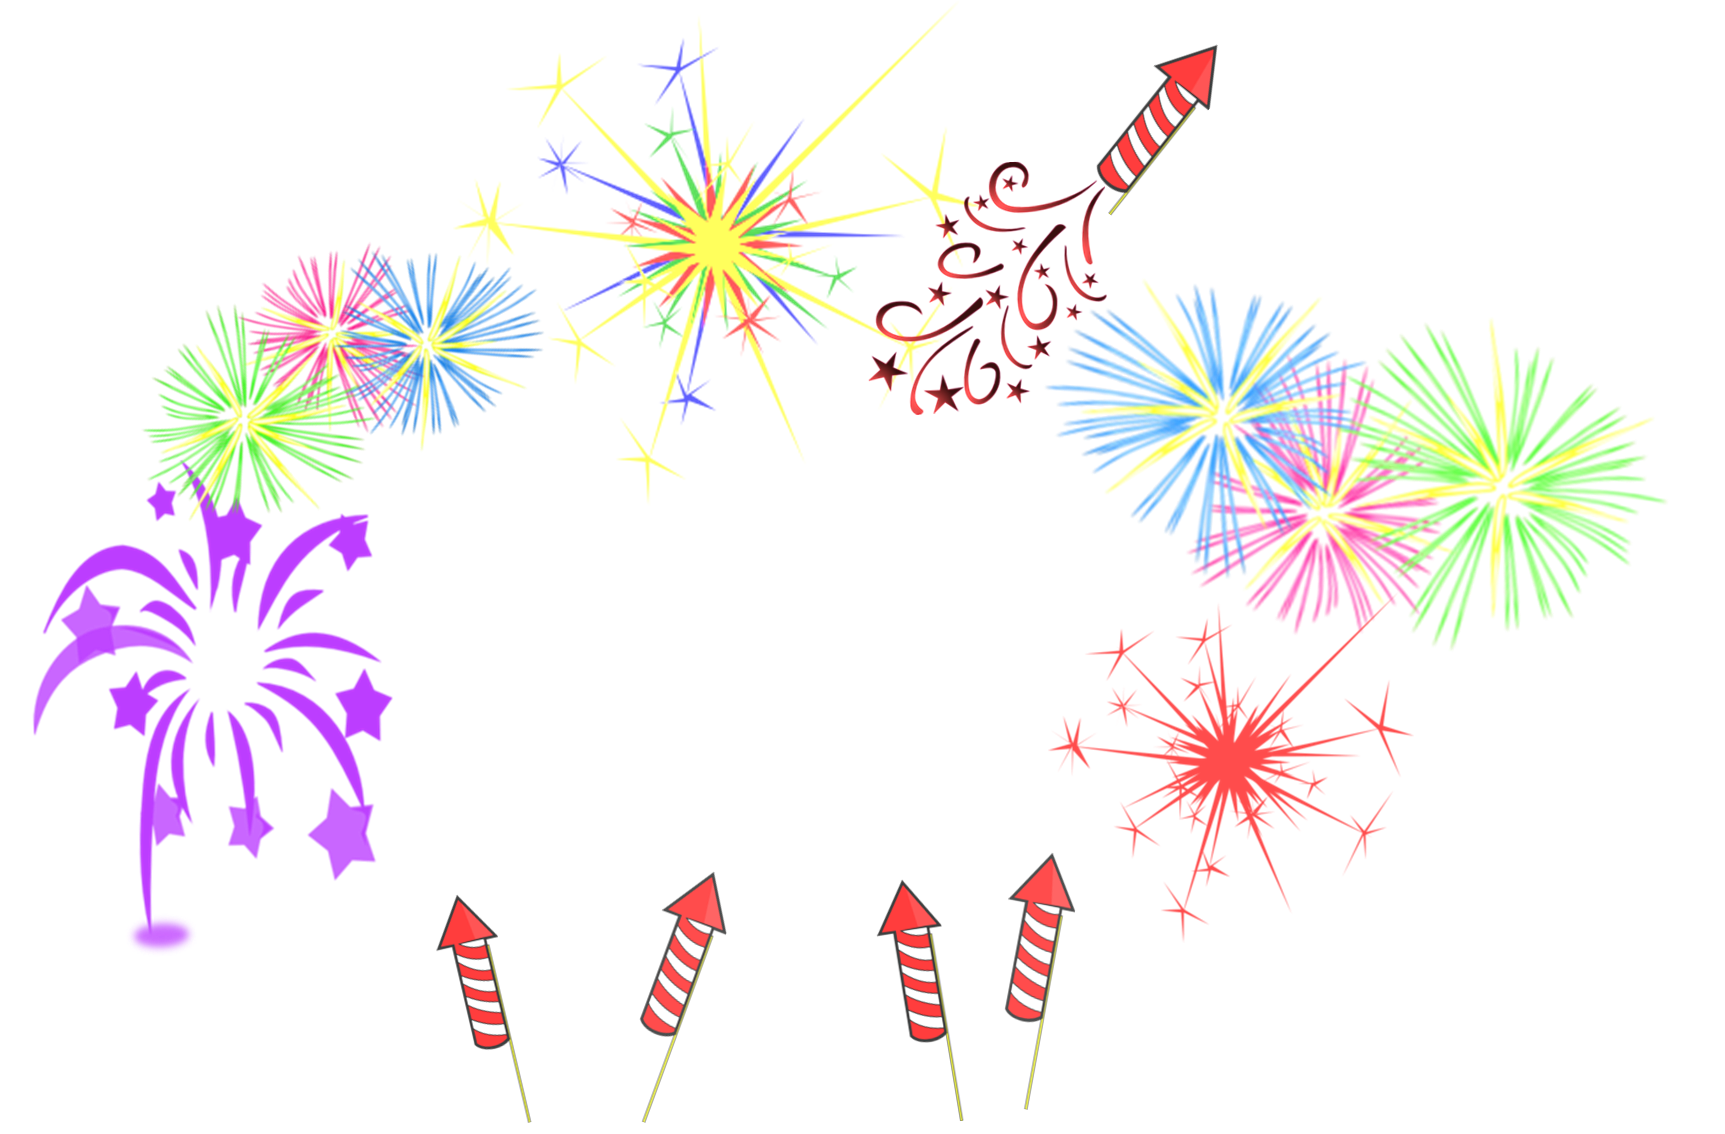 fireworks frame free images at clkercom vector clip